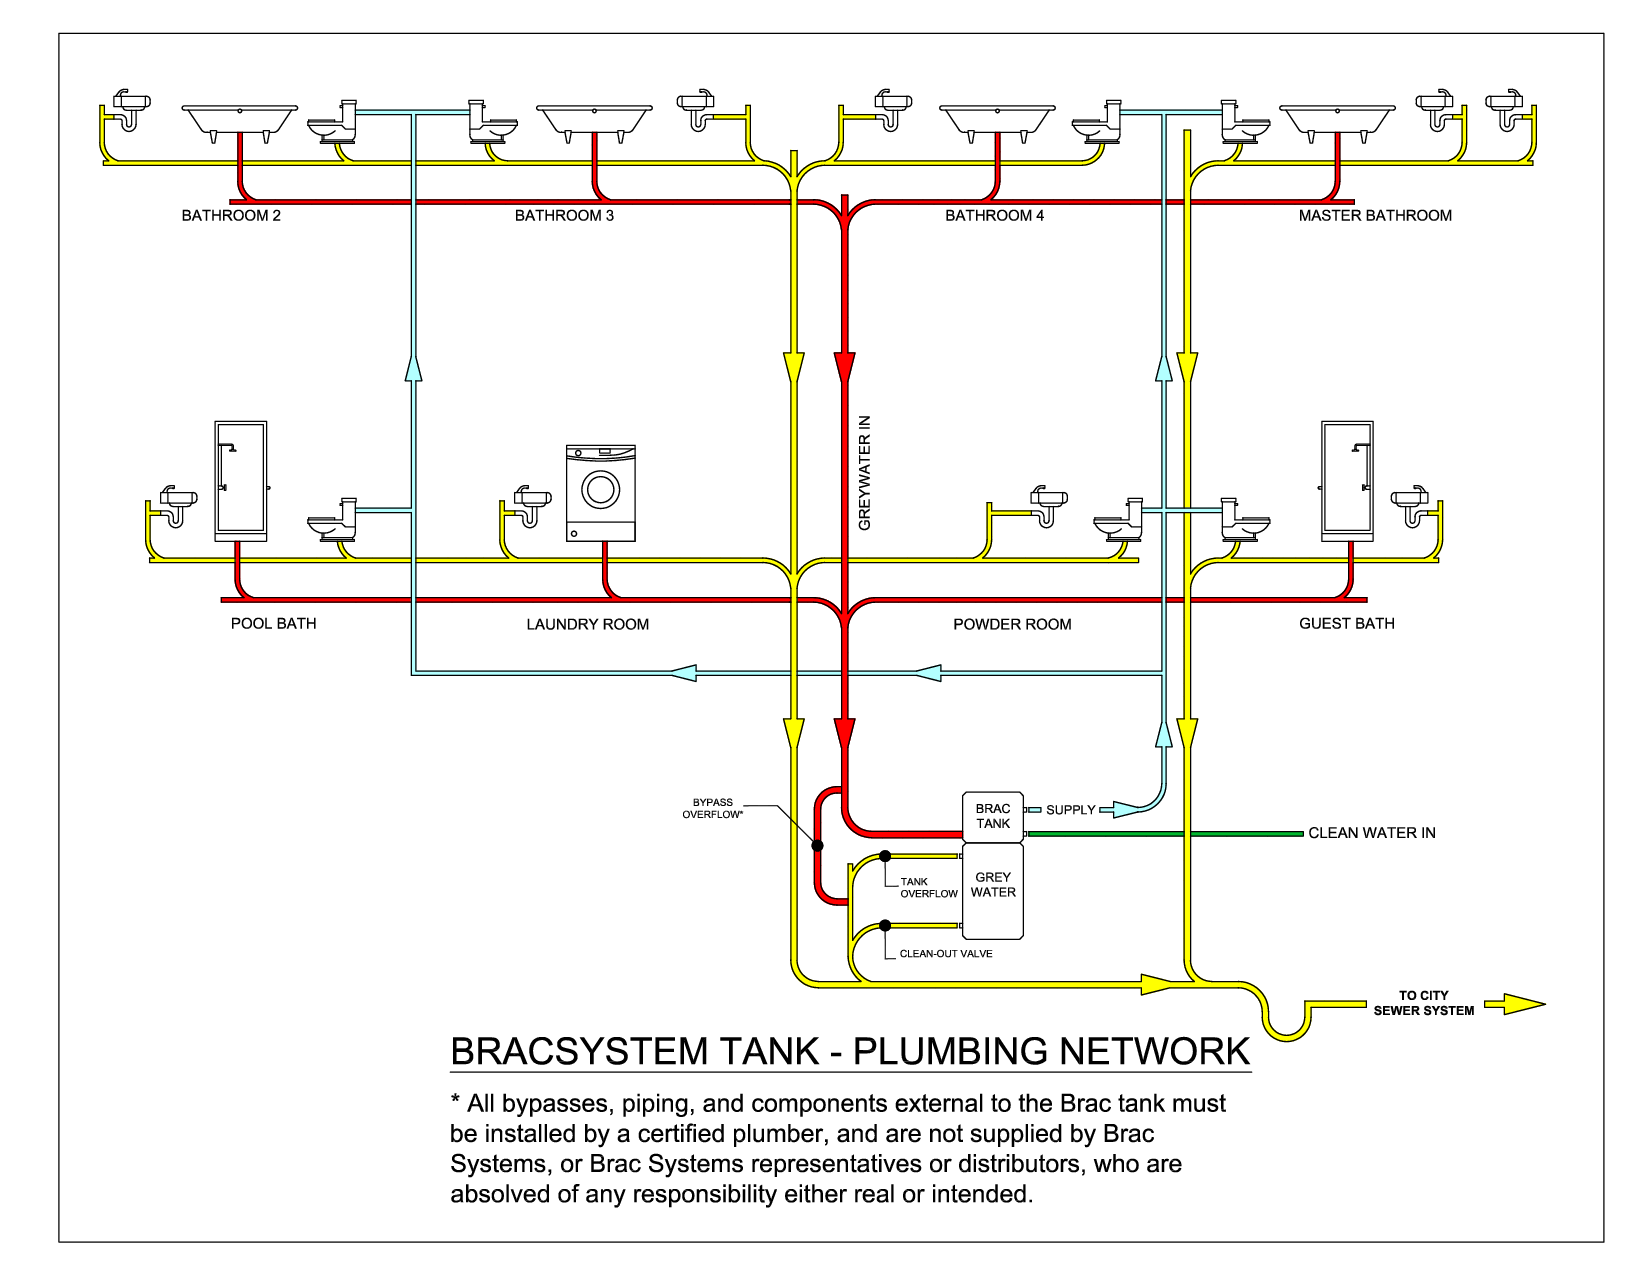 medium resolution of mobile home plumbing systems plumbing network diagram pdf